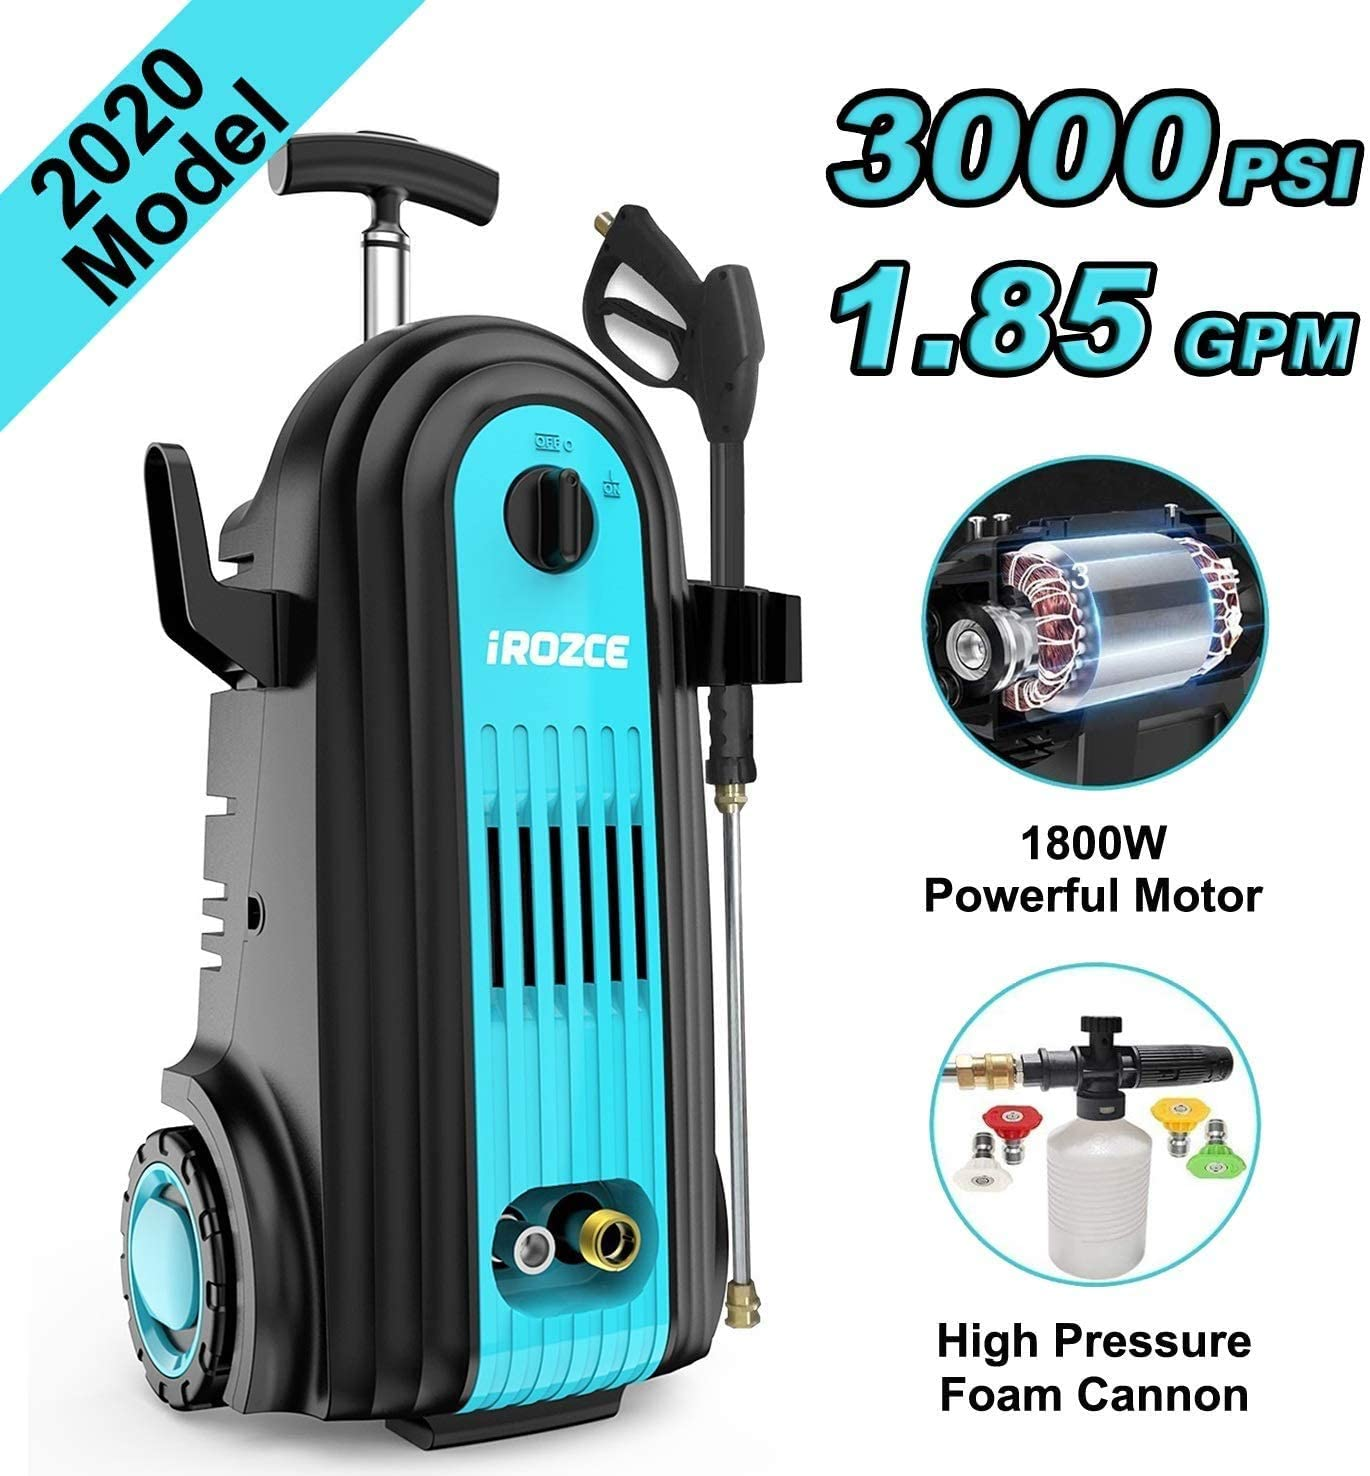 irozce Pressure Washer, 2610PSI 1.85GPM Electric Power Washer with Foam Cannon, Metal Adapter, Quick Connector Nozzles for Driveway, Deck, Patio Furniture, Car Washing, Blue